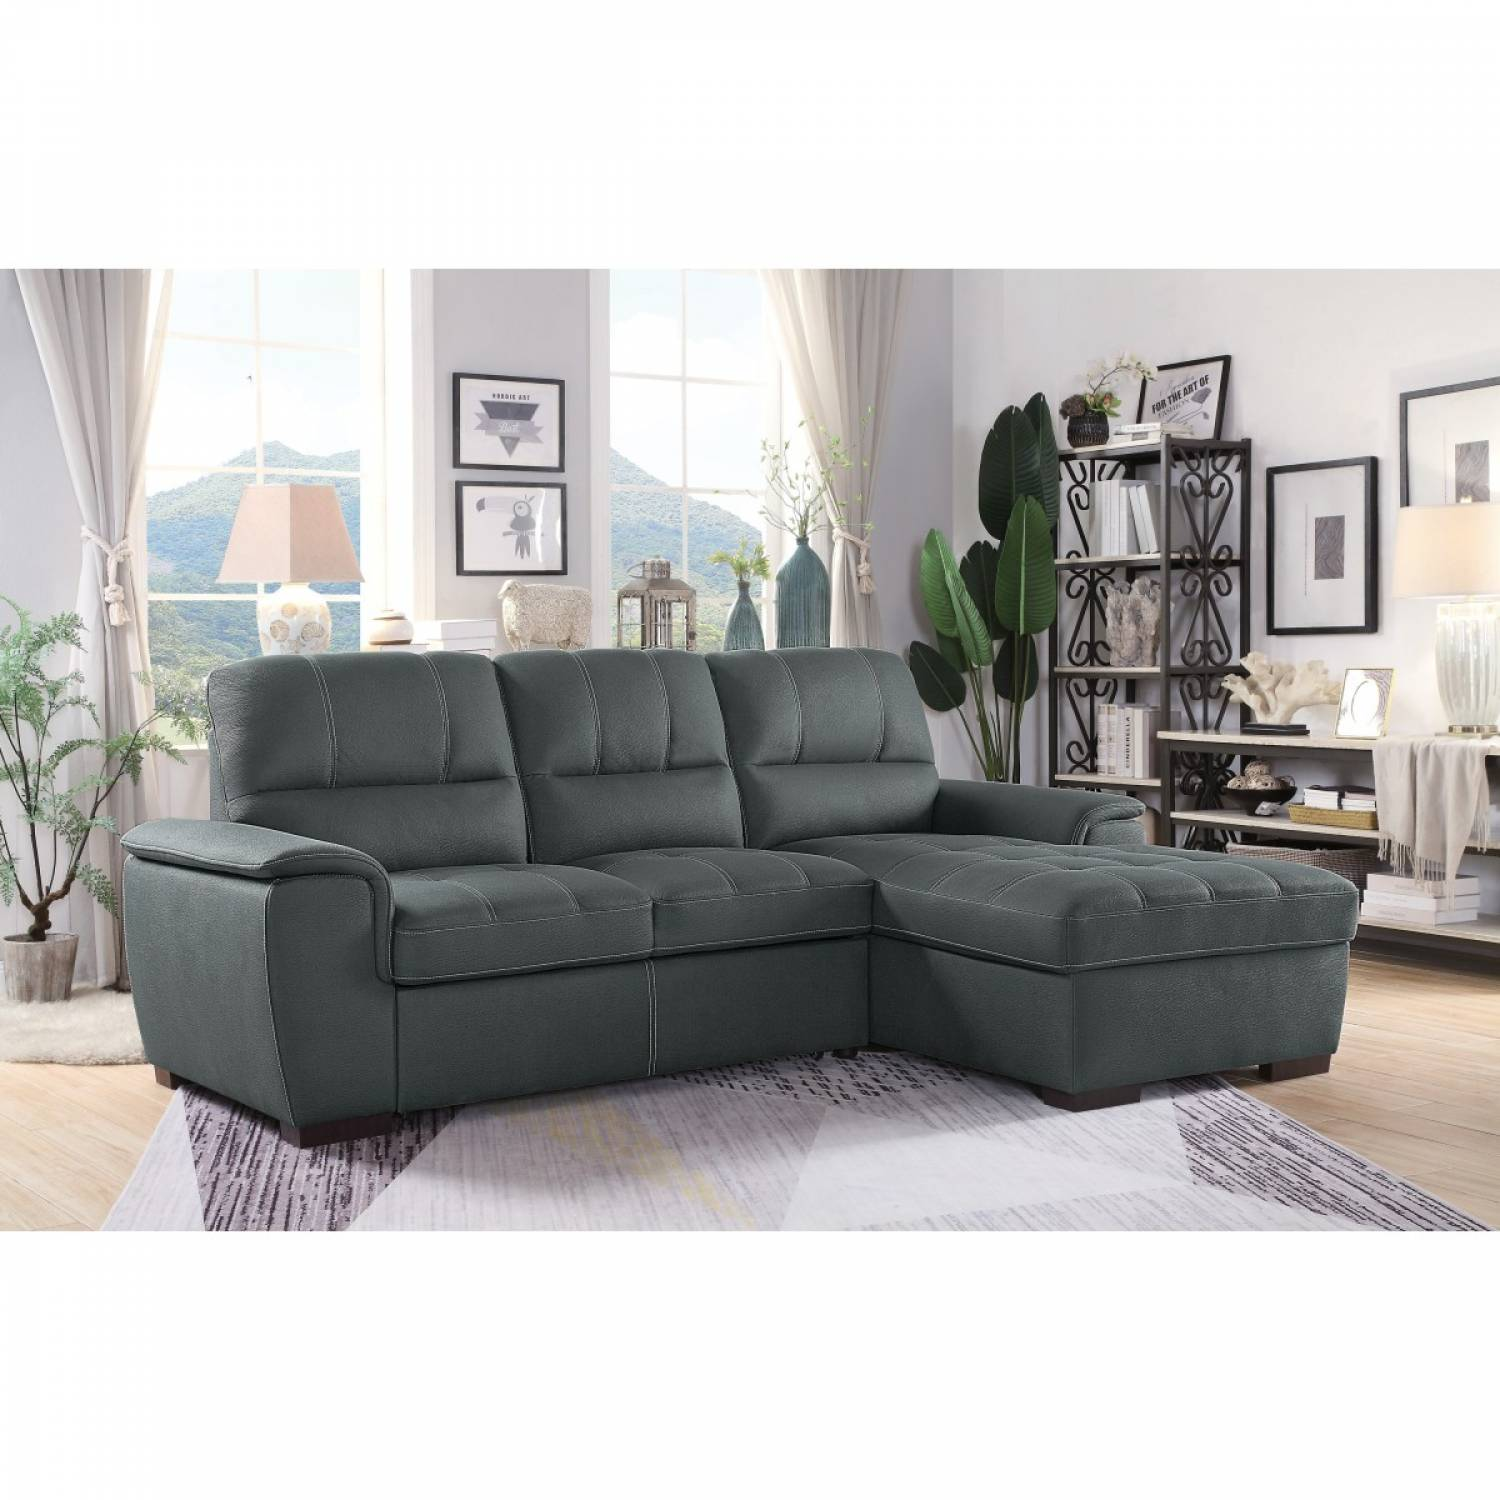 Picture of: 9858gy Sc 2 Piece Sectional With Pull Out Bed And Hidden Storage Andes